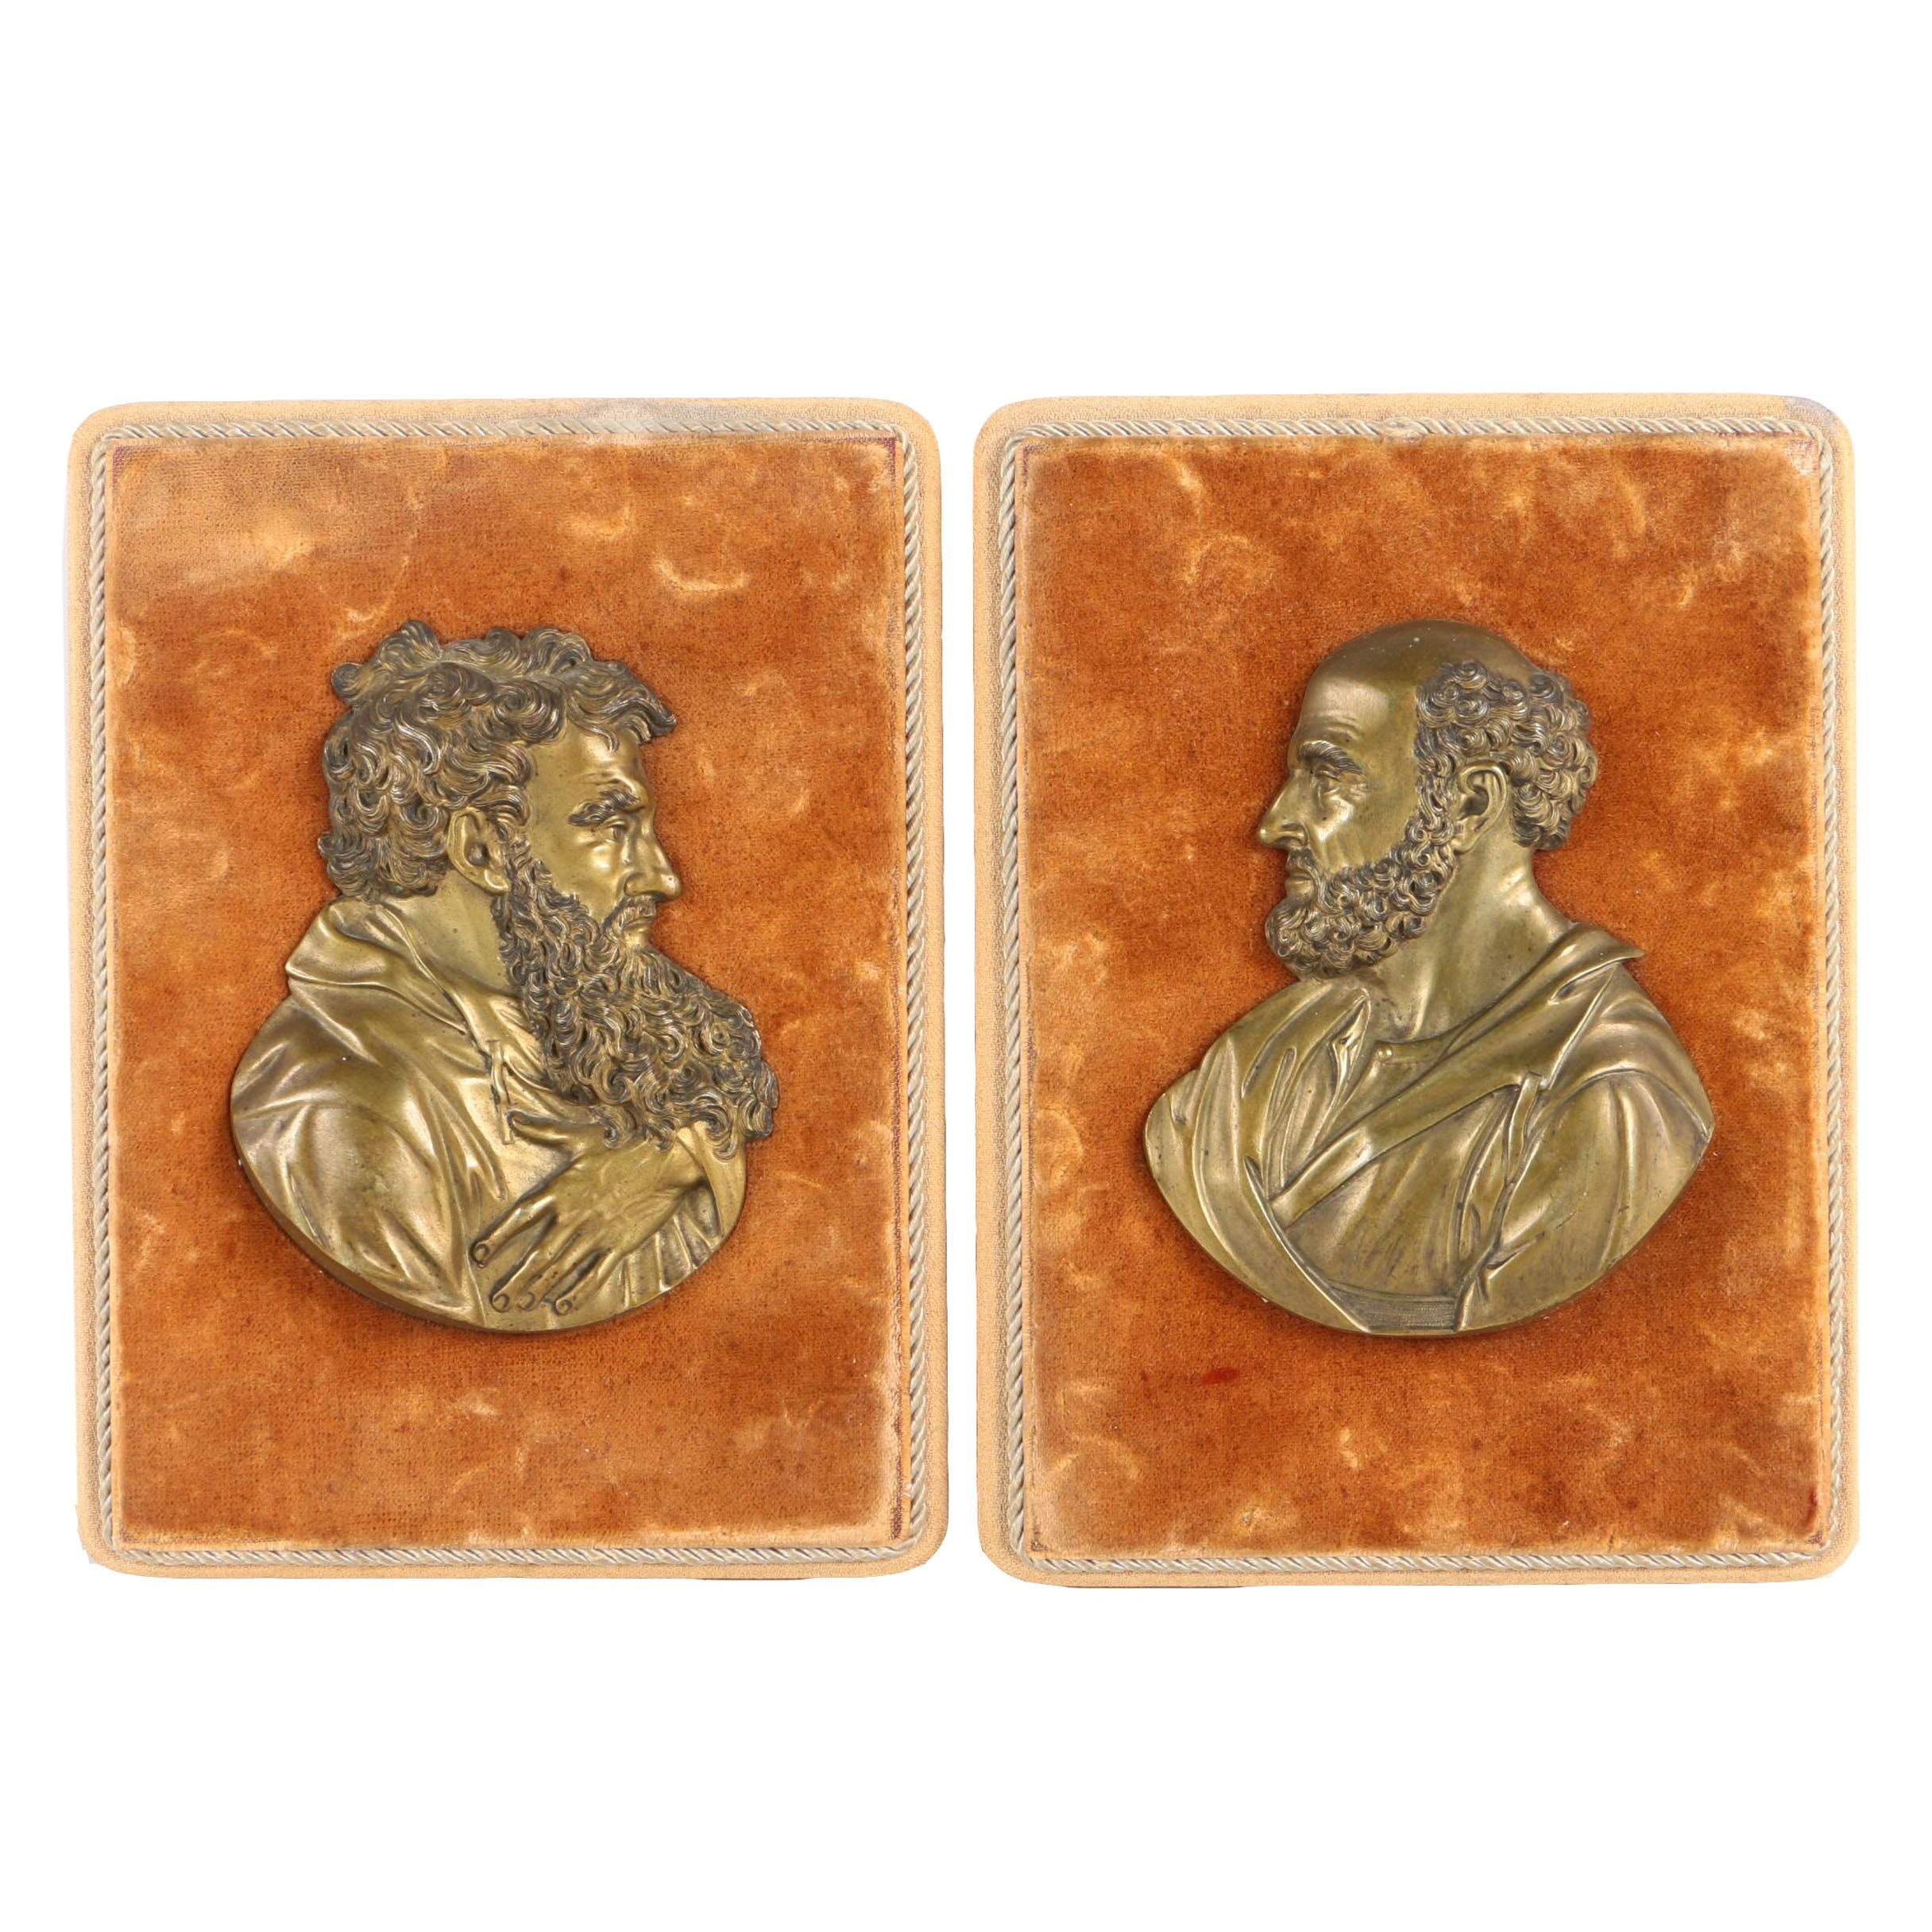 Metal Relief Portraits of Men